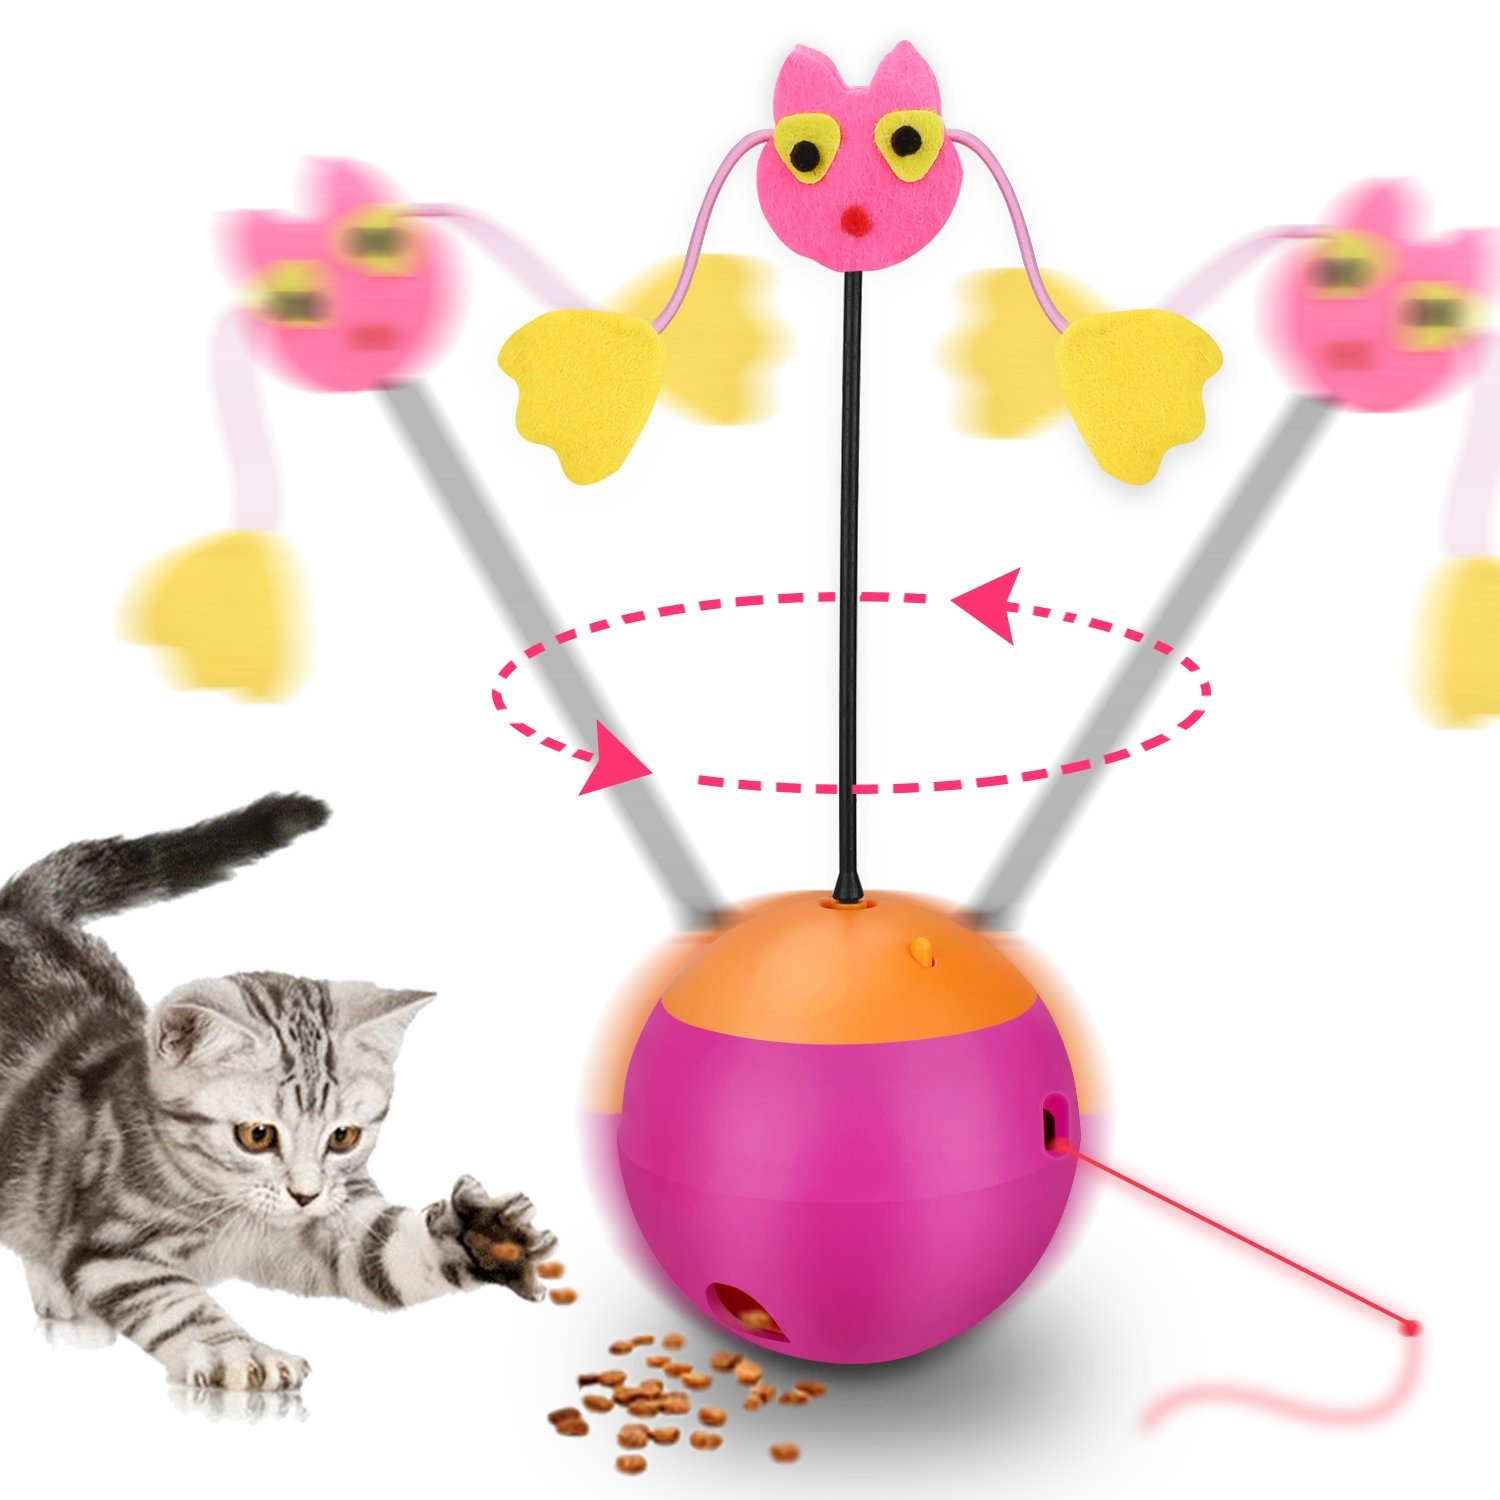 Yofun Interactive Cat Toy, 3 in 1 Multi Function Automatic Spinning Cat Toy Ball Tumbler with Chaser Light and Food Dispenser for Kitty and Kitten, Pink (Pink)